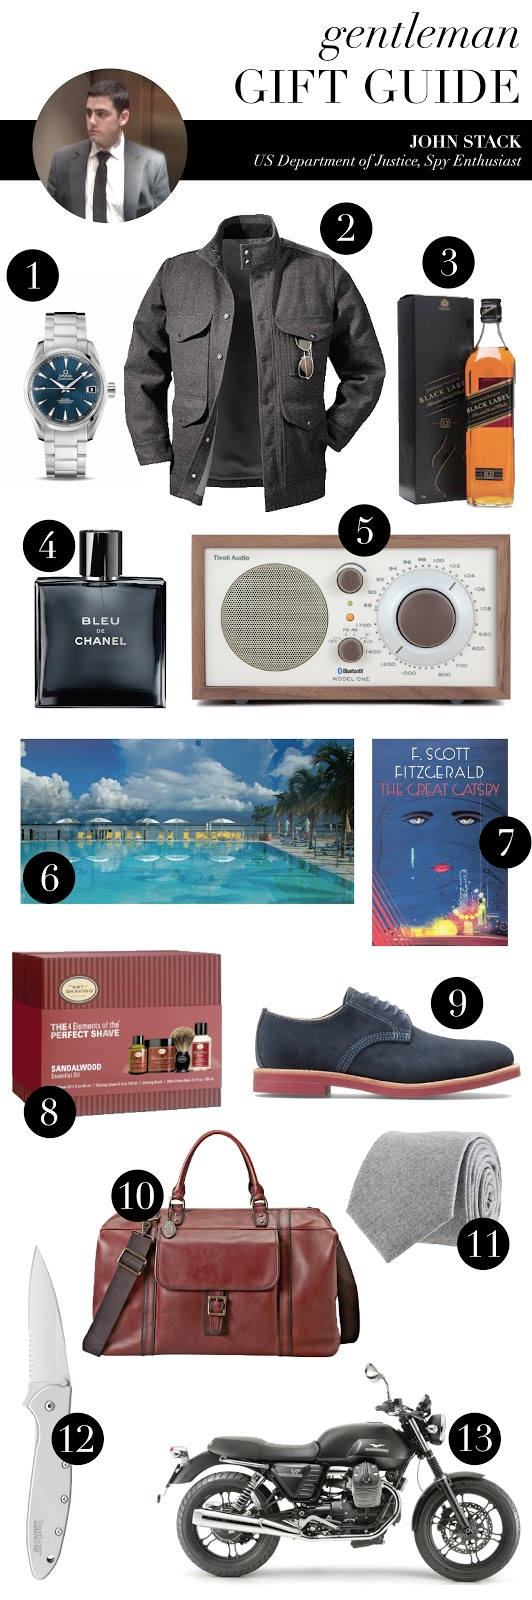 gift guide for the gentleman (via Holly Would)